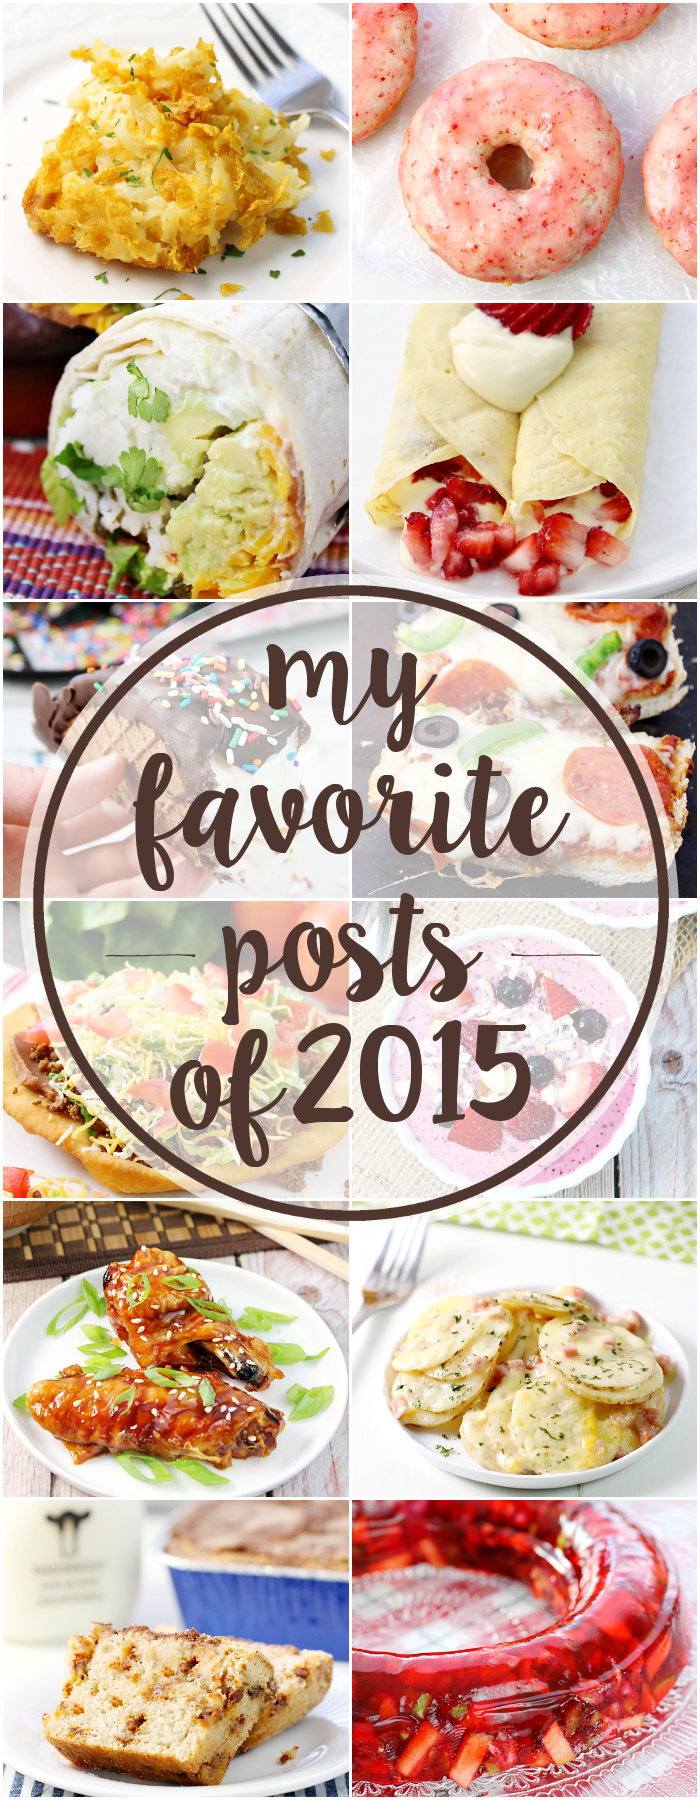 A round-up of my favorite posts from 2015 - one recipe post for each month of the year!